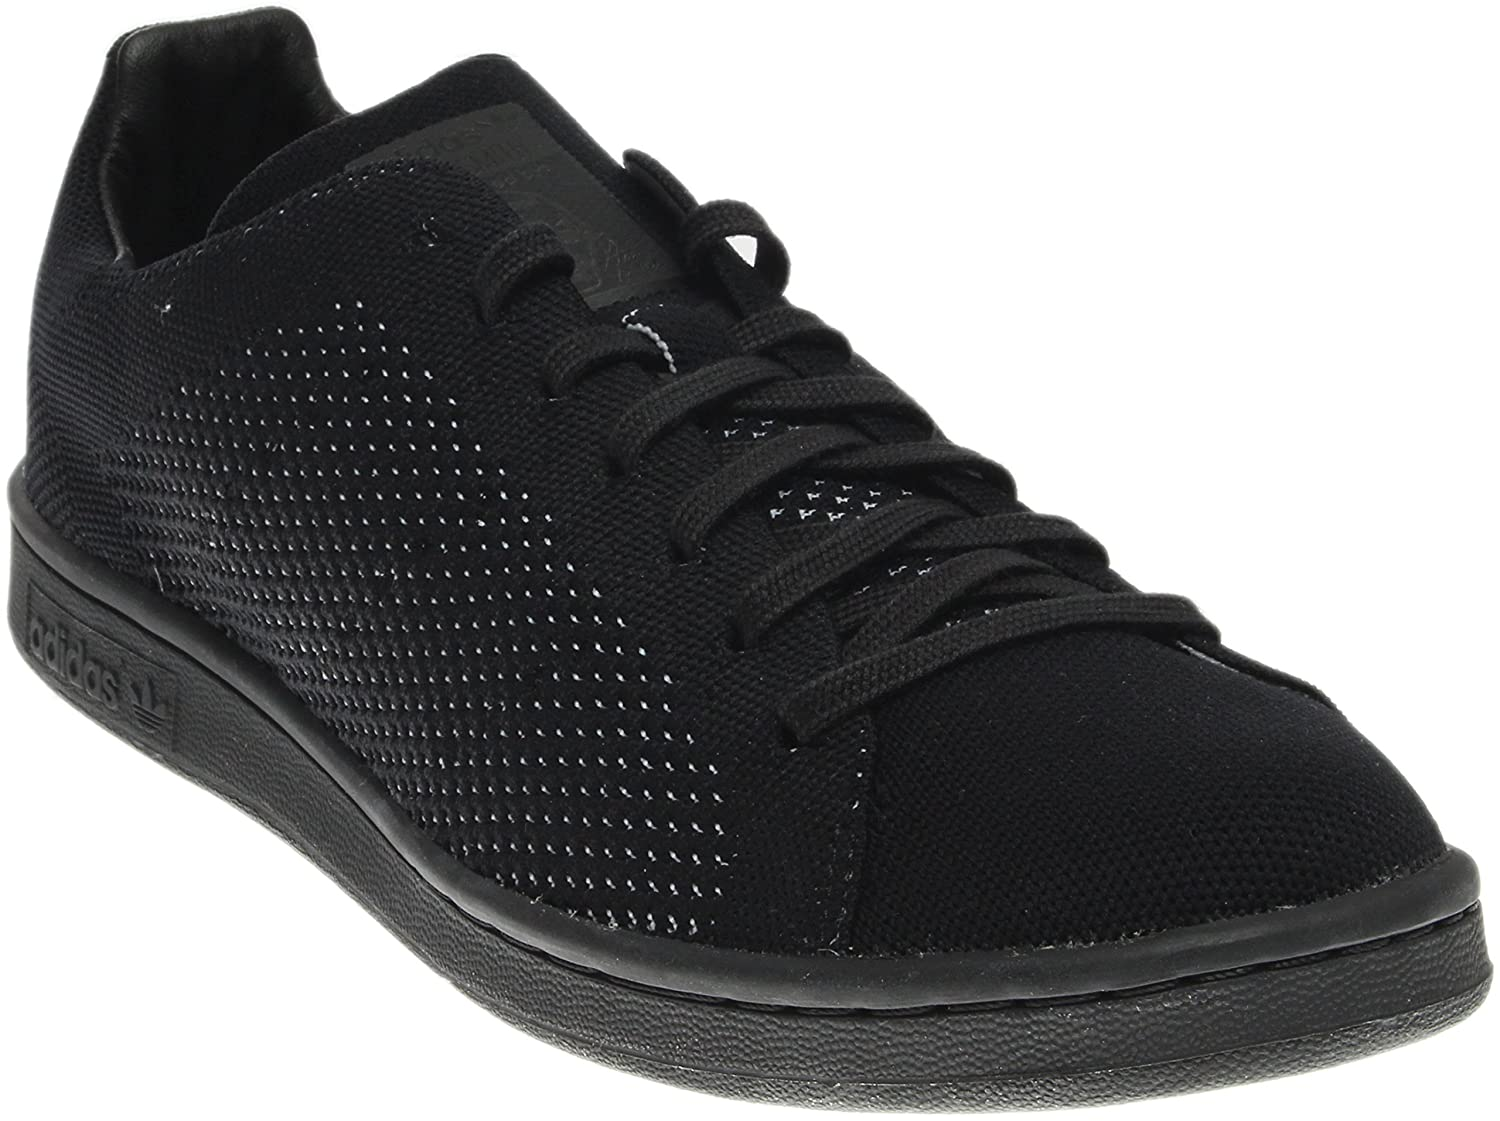 reputable site b6eed e65ae Adidas Originals Mens Stan Smith OG PK Fashion Sneaker Black Adidas  Amazon.ca Shoes  Handbags